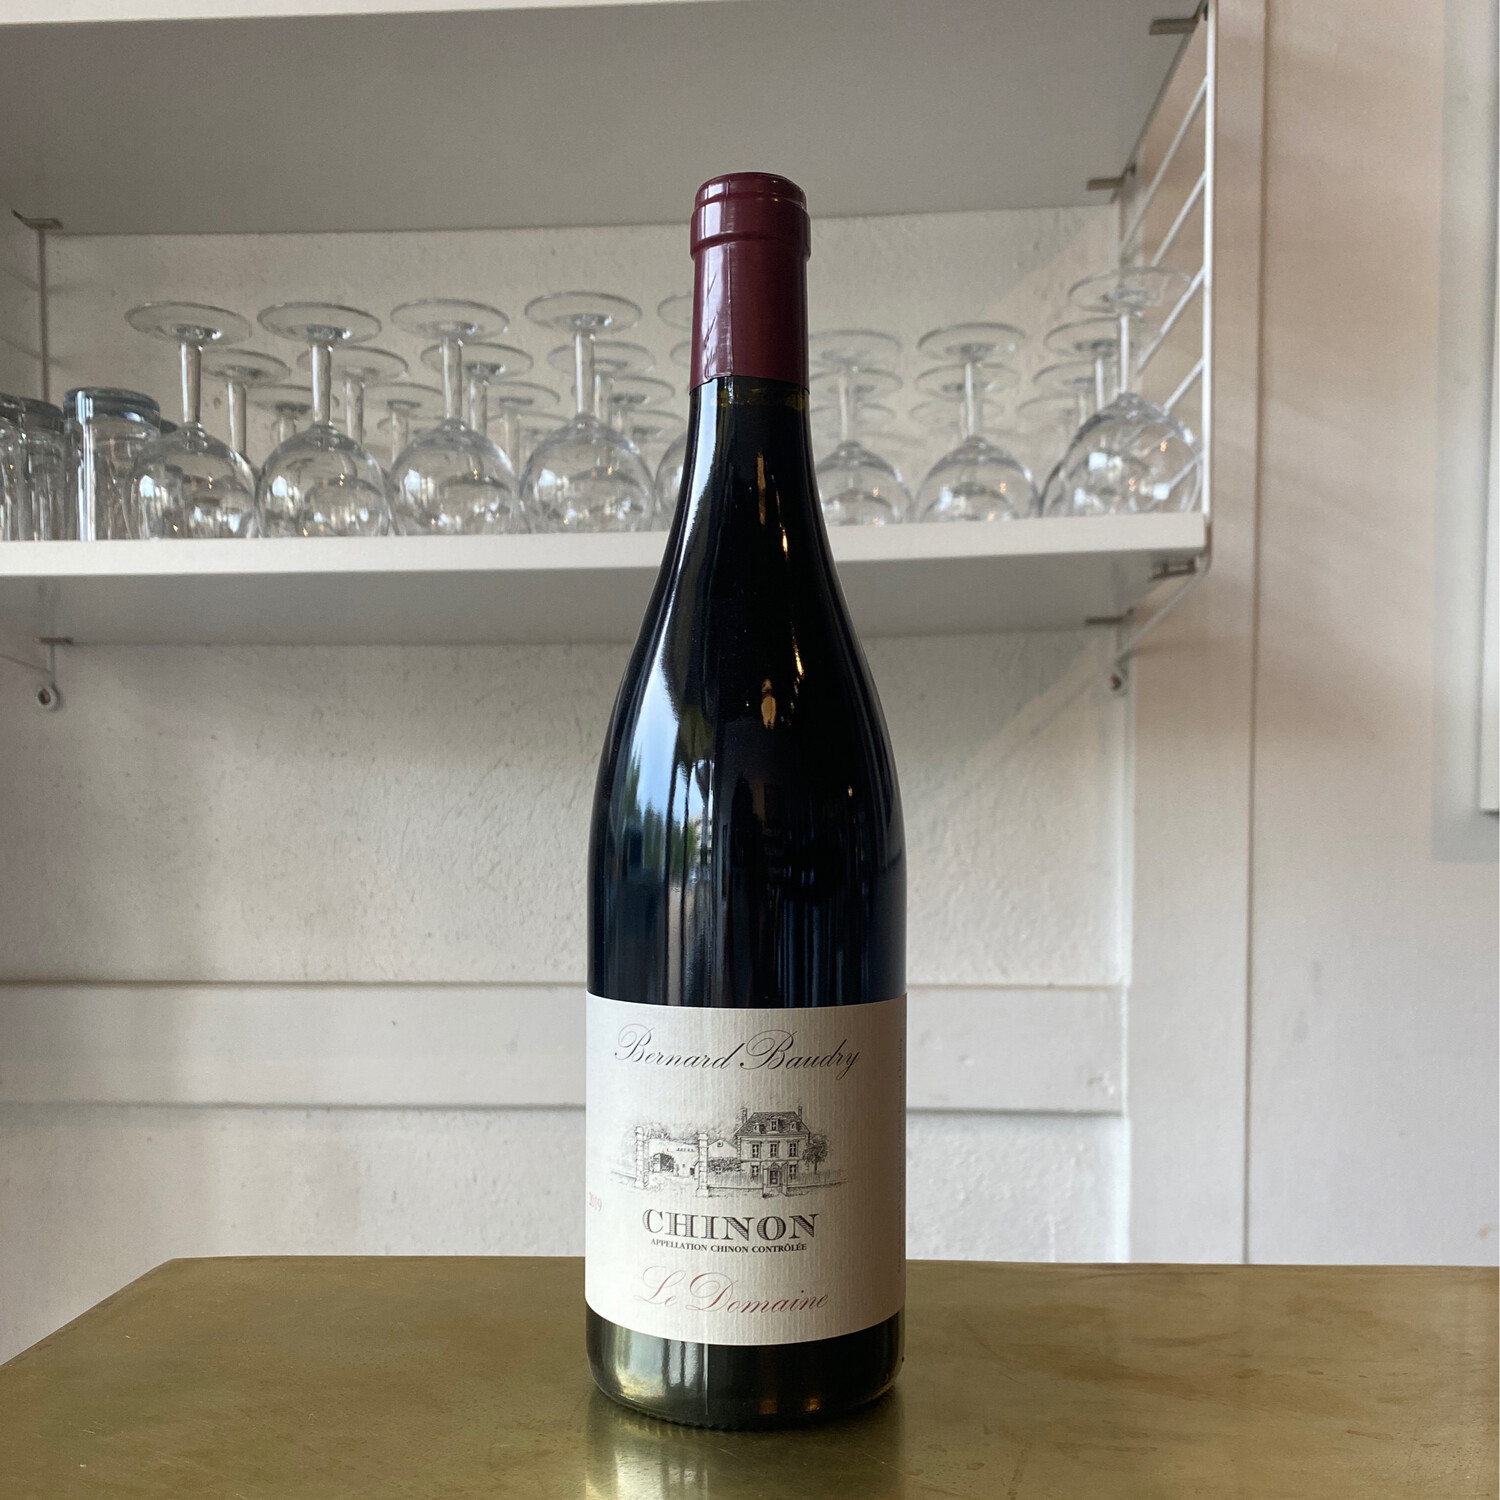 Baudry, Chinon Le Domaine (2019)